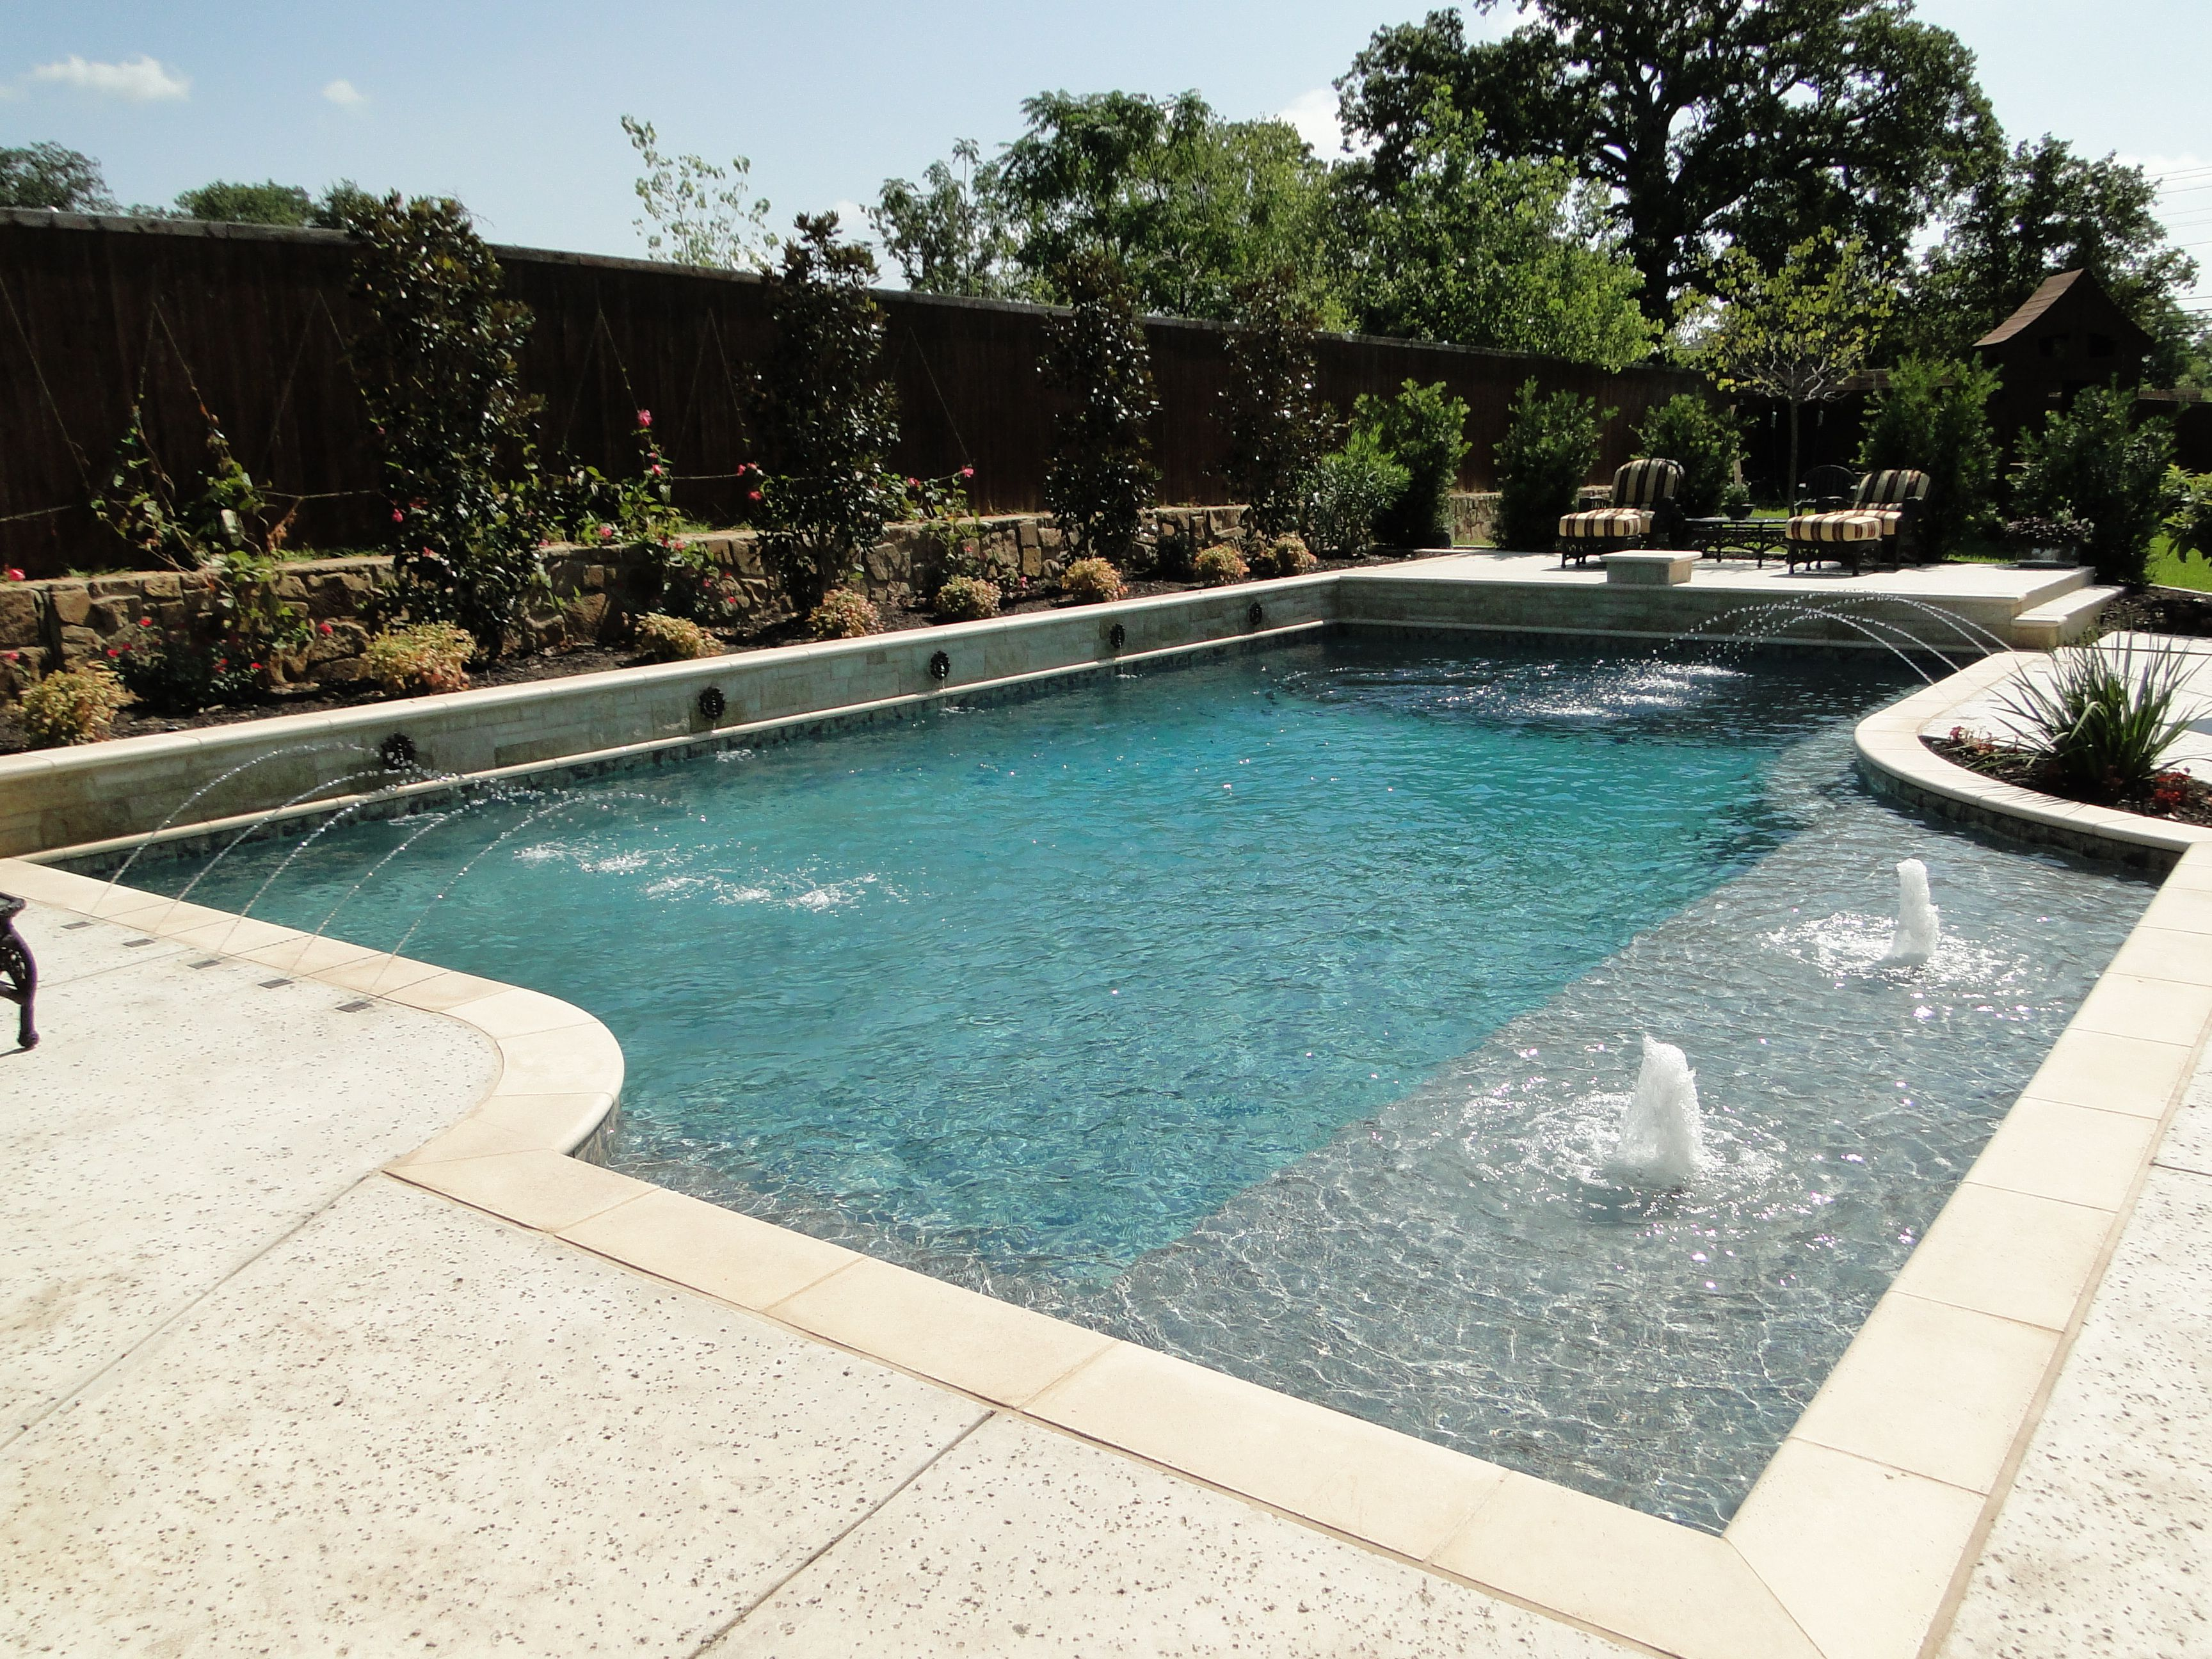 Elegant Pool Designs square swimming pool designs decorating a small back yard for small backyard small ideas Pool Houses